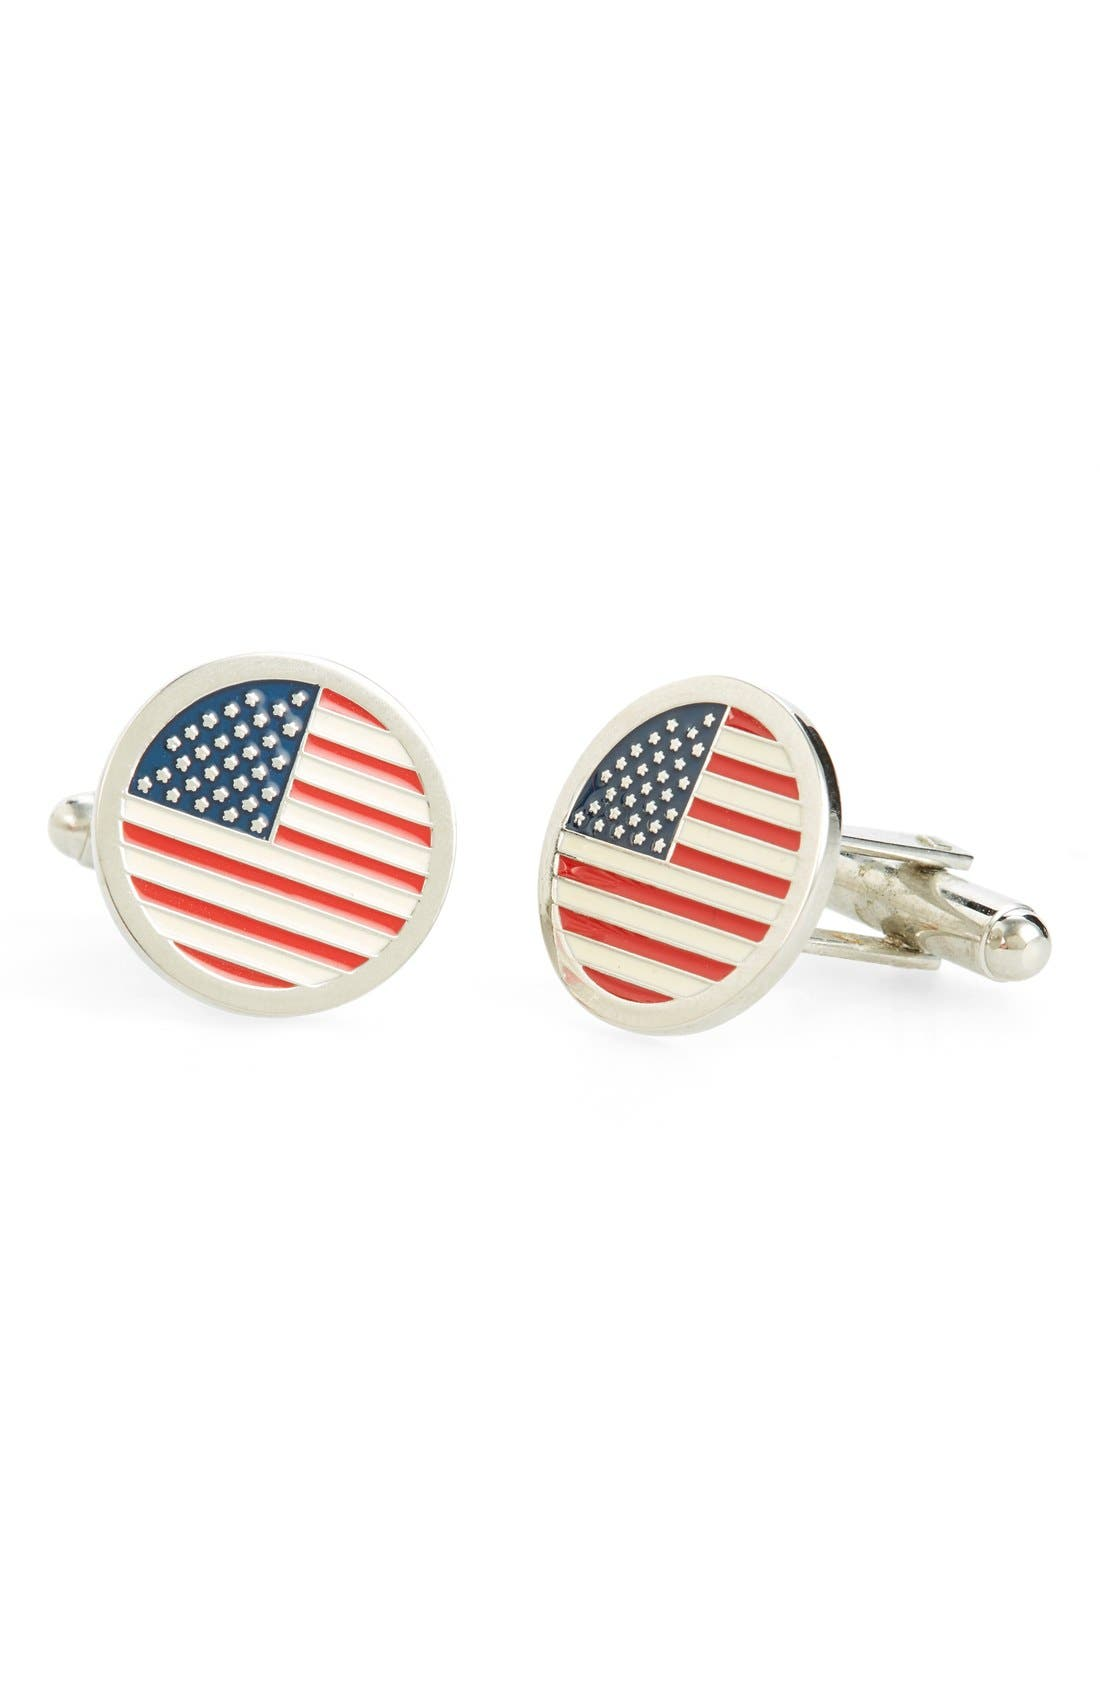 Round American Flag Cuff Links,                         Main,                         color, Red/ White/ Blue